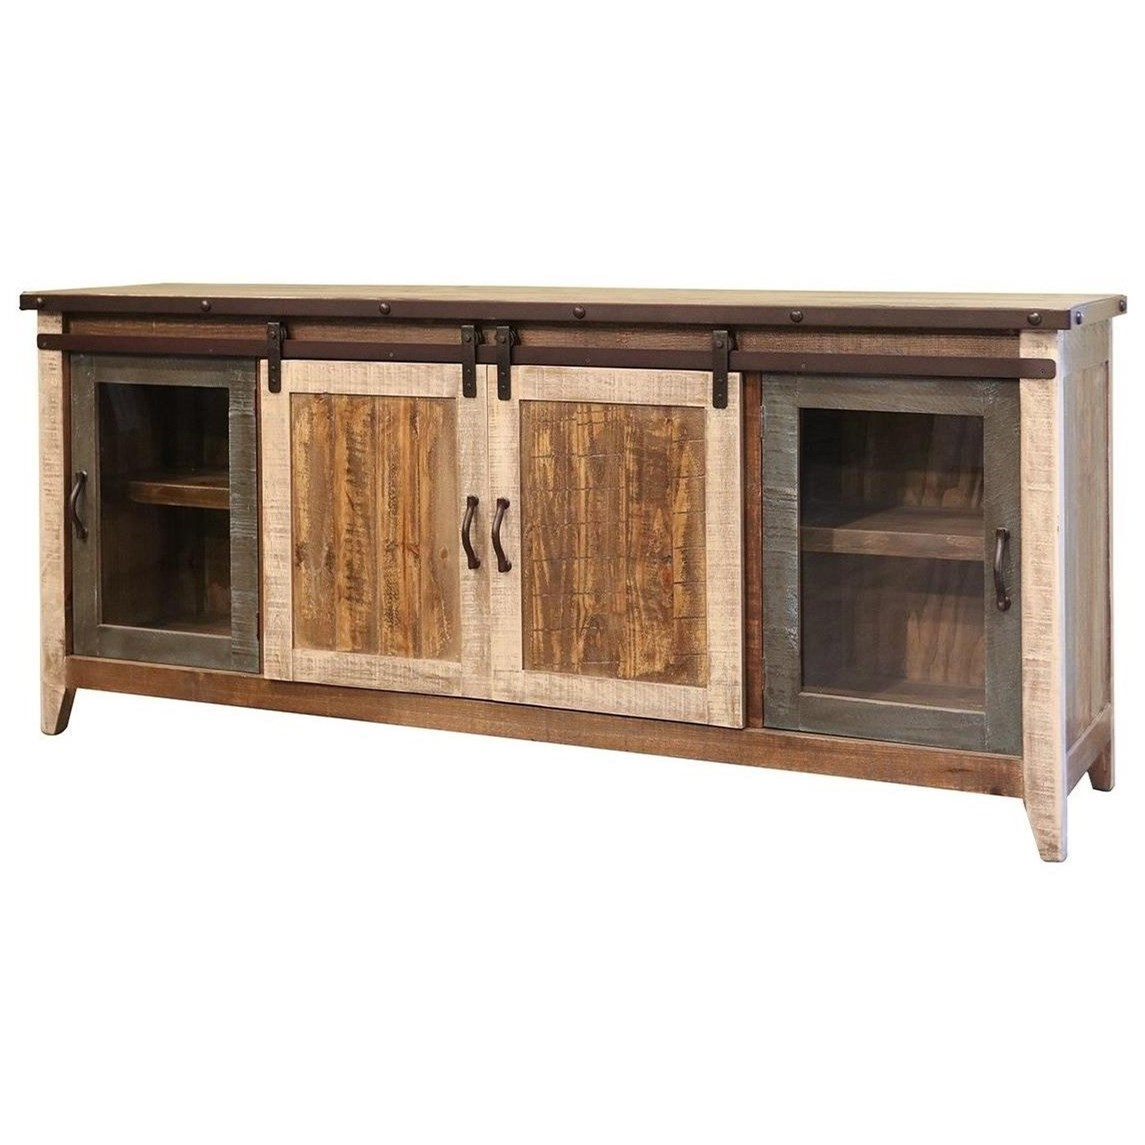 900 Antique TV Stand with Sliding Doors by IFD International Furniture Direct at Suburban Furniture